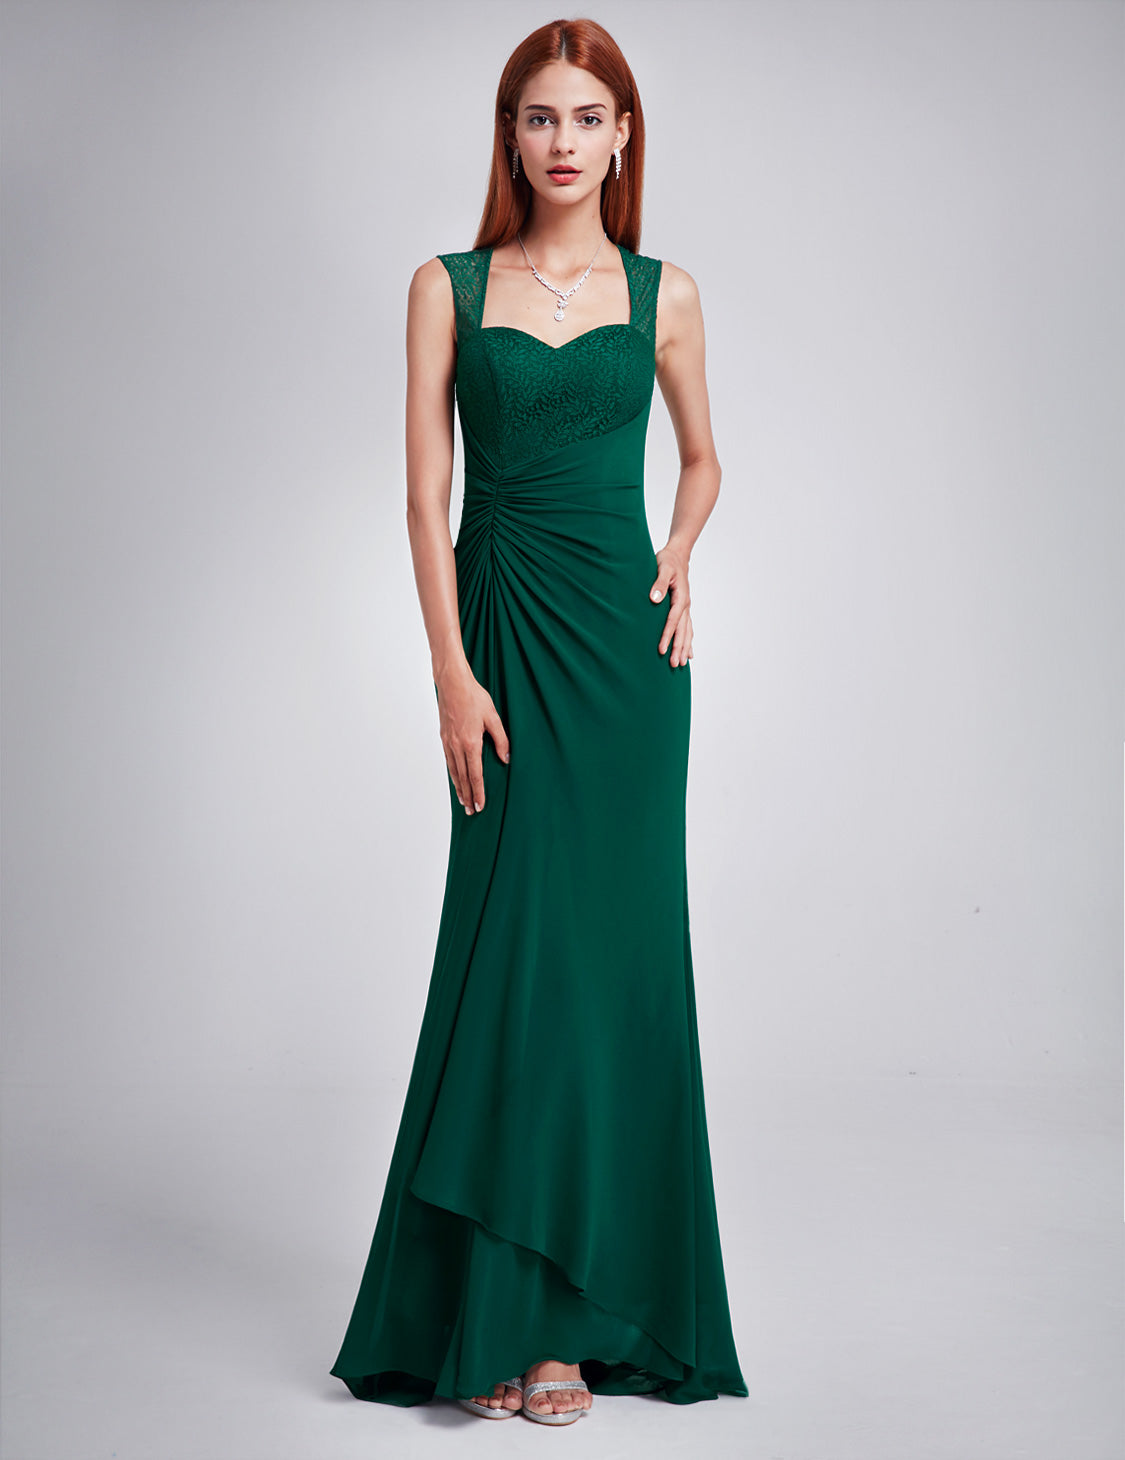 Obeige Elegant Green Sleeveless Long Evening Party Dress - O'beige